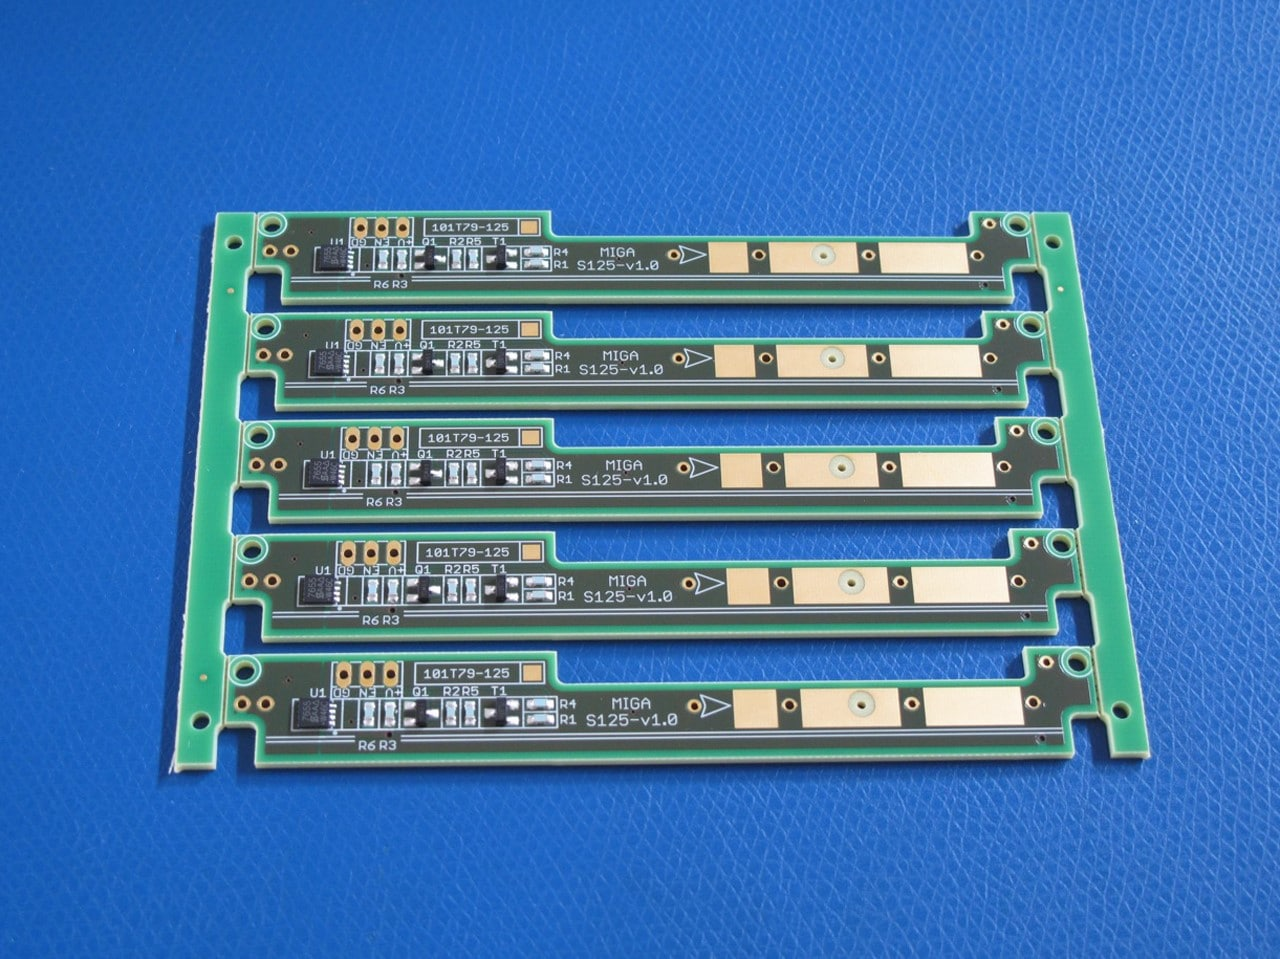 Pick and place actuator circuit boards